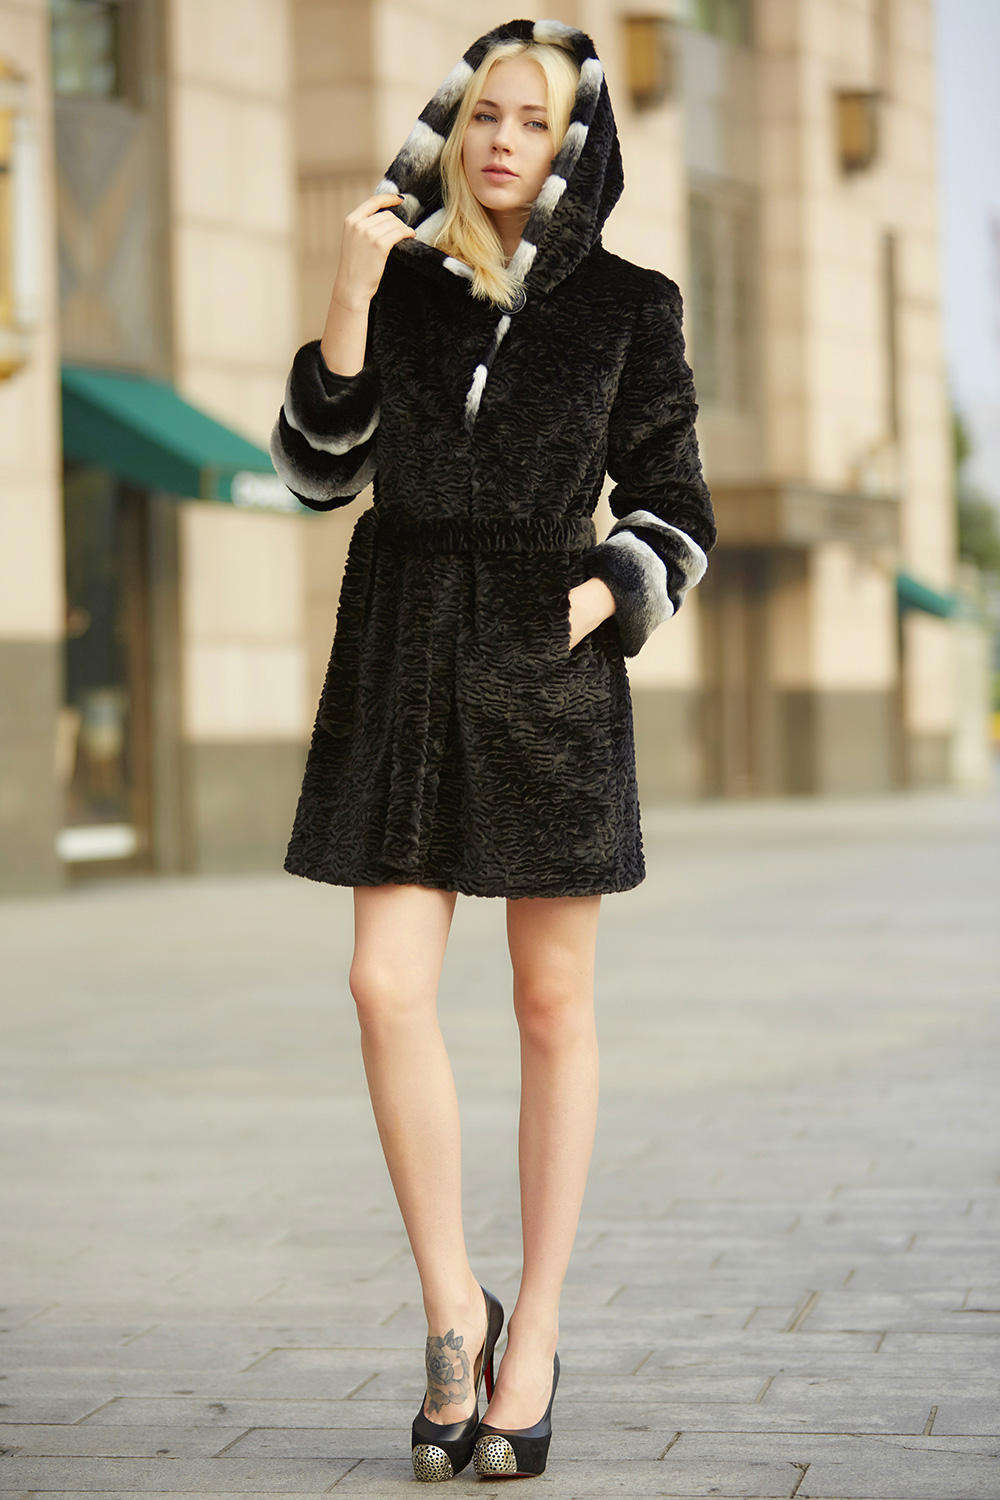 Fashionable and Cruelty-Free Fur Coats For Winter